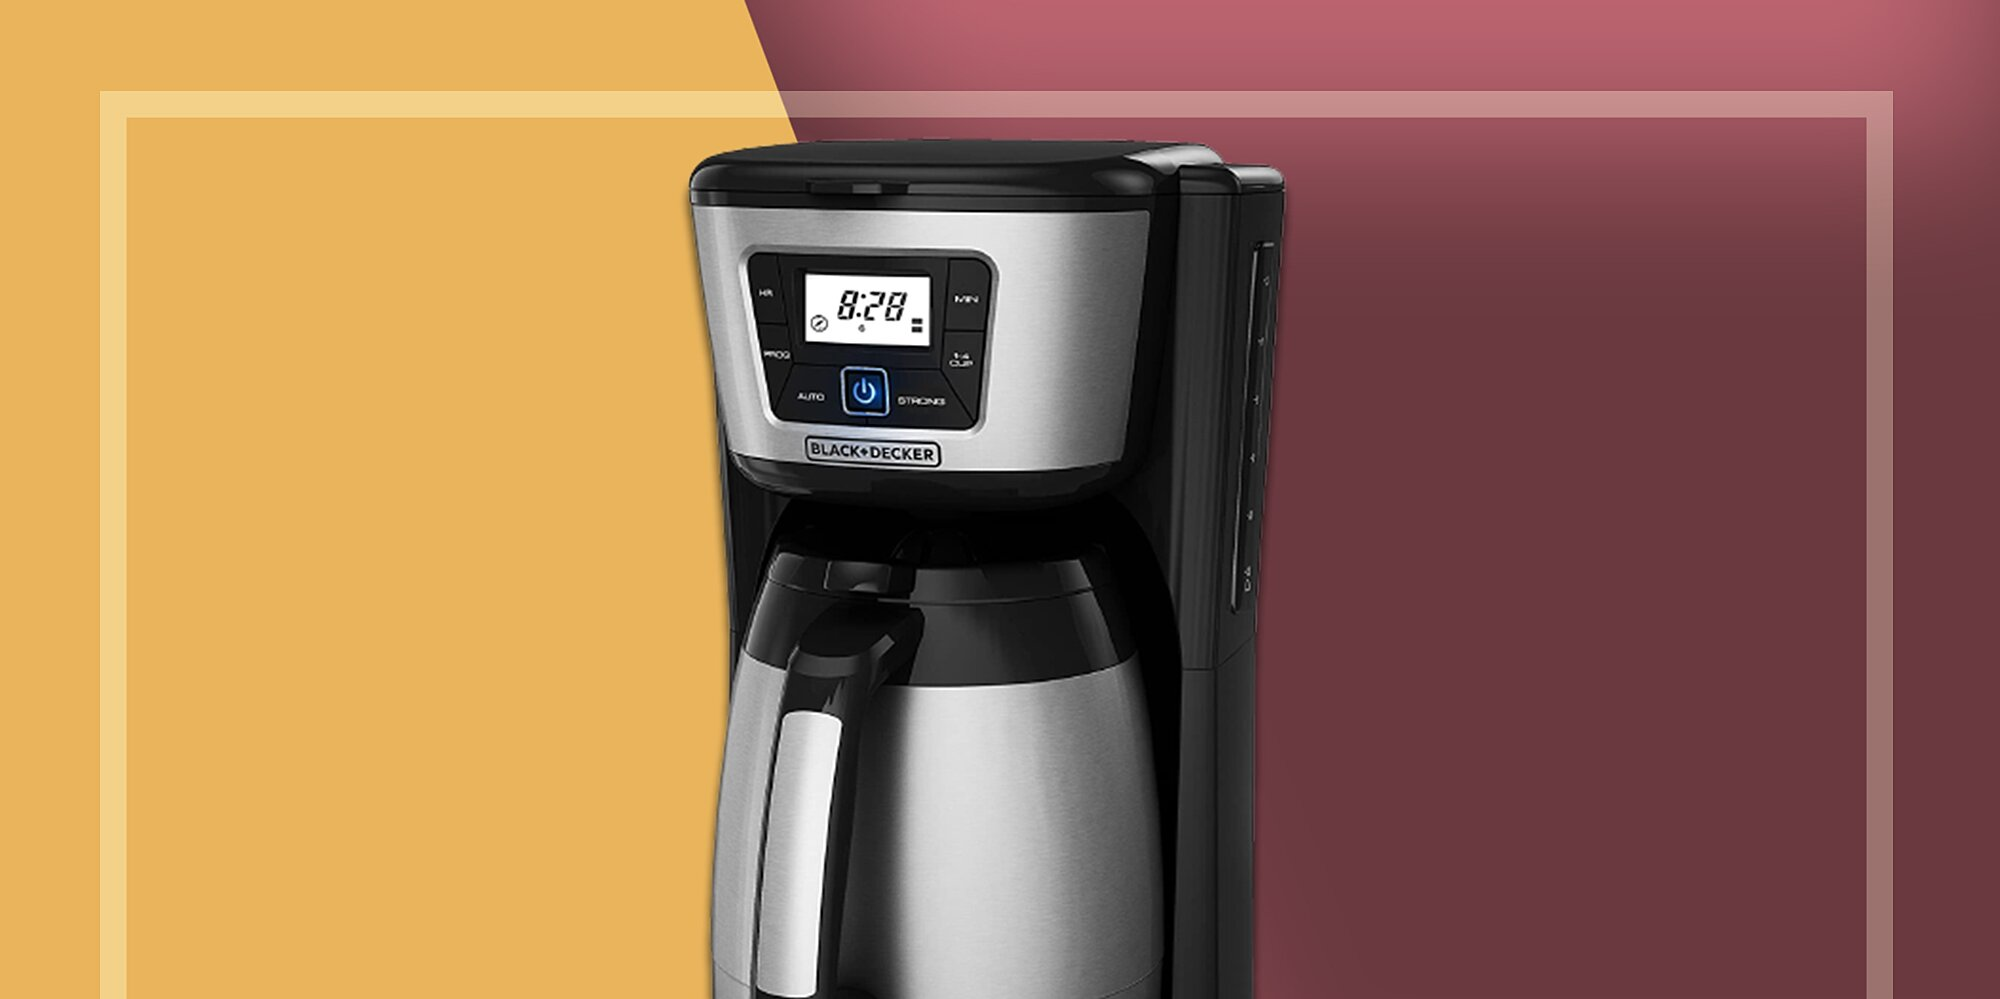 Amazon Shoppers Are Ditching Fancy Espresso Machines for This Beloved $50 Coffee Maker